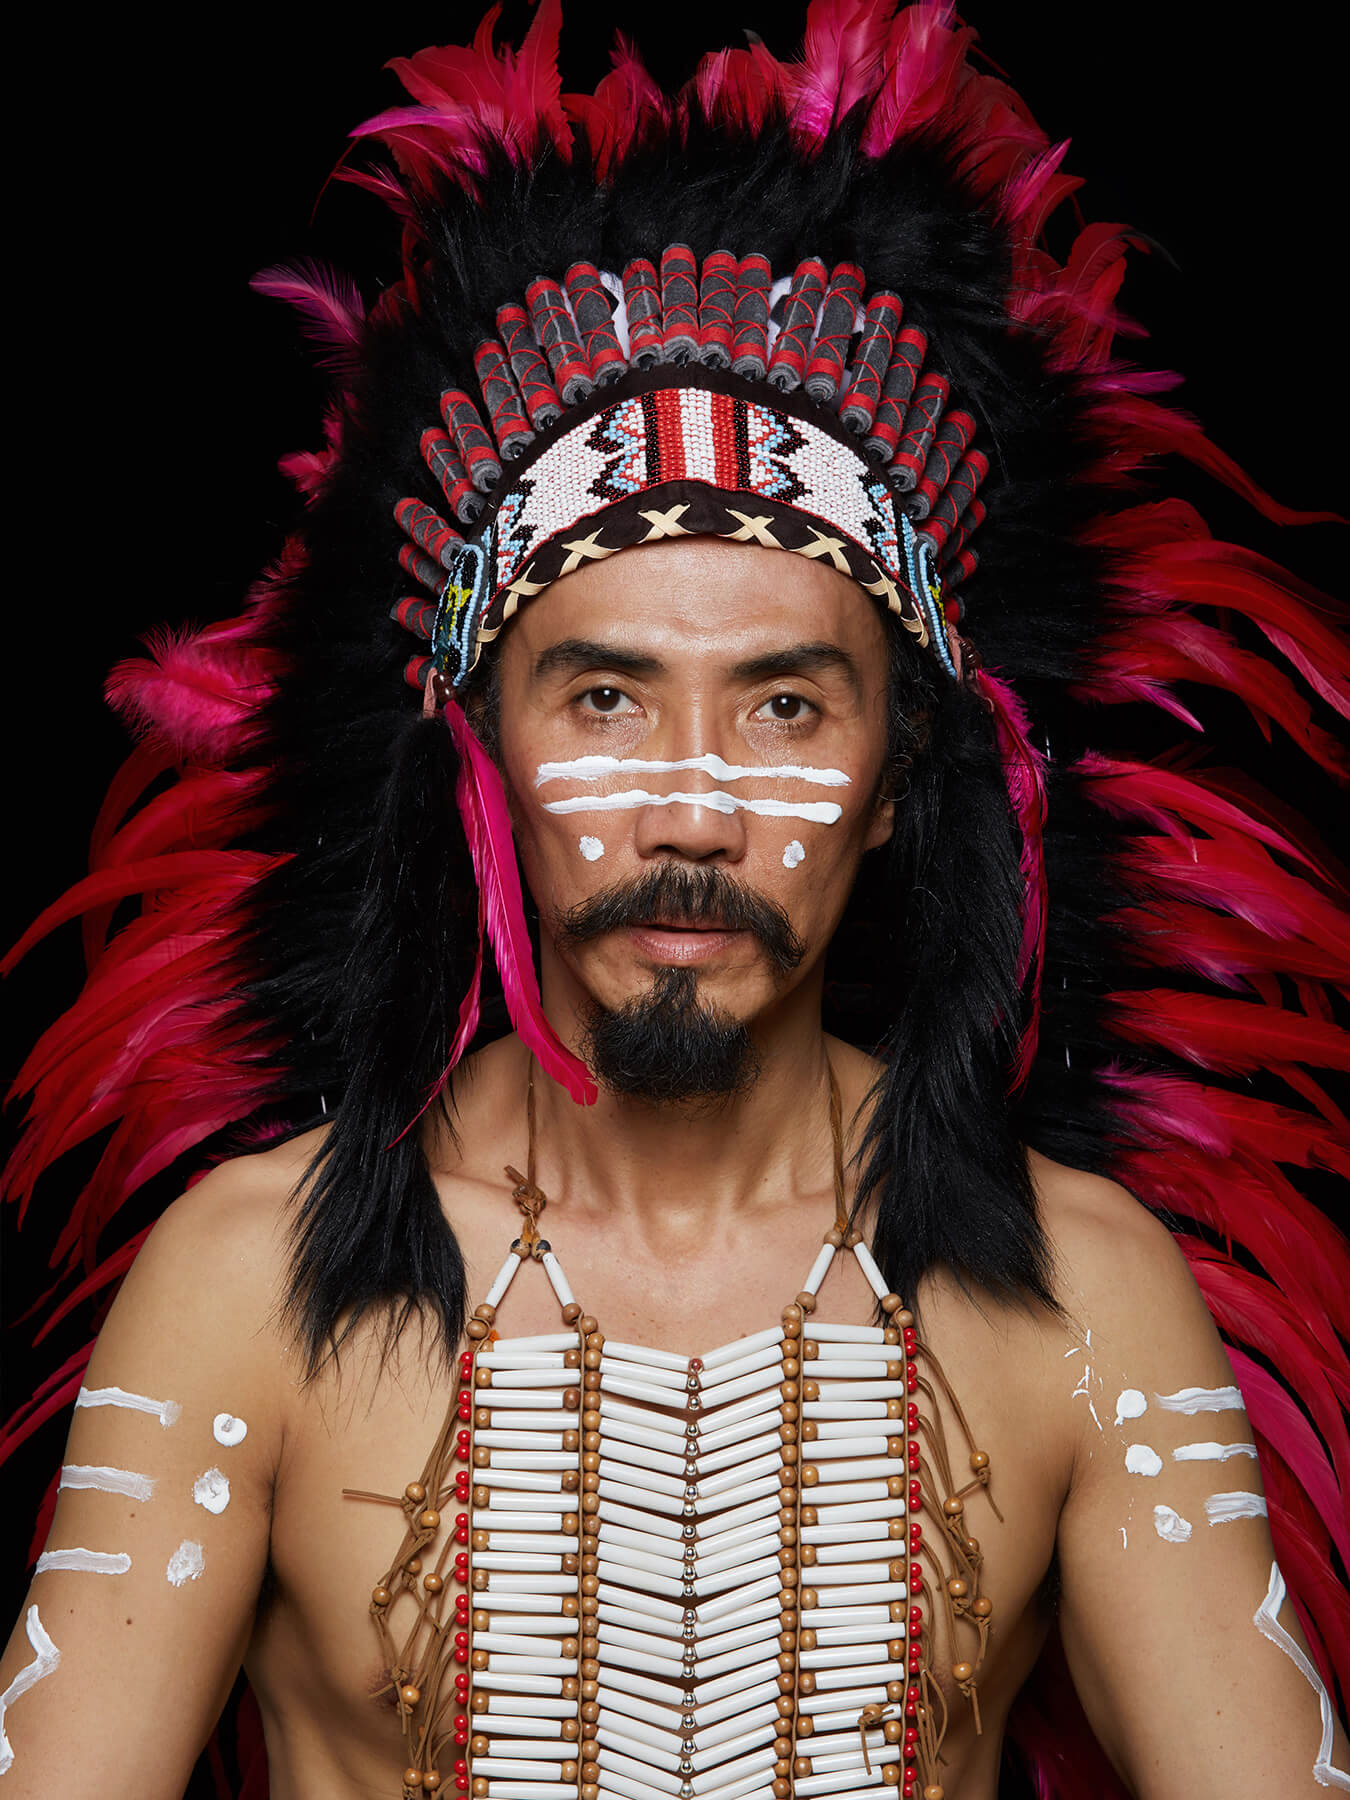 4 Sep 2017: Derong is styled as a Native American